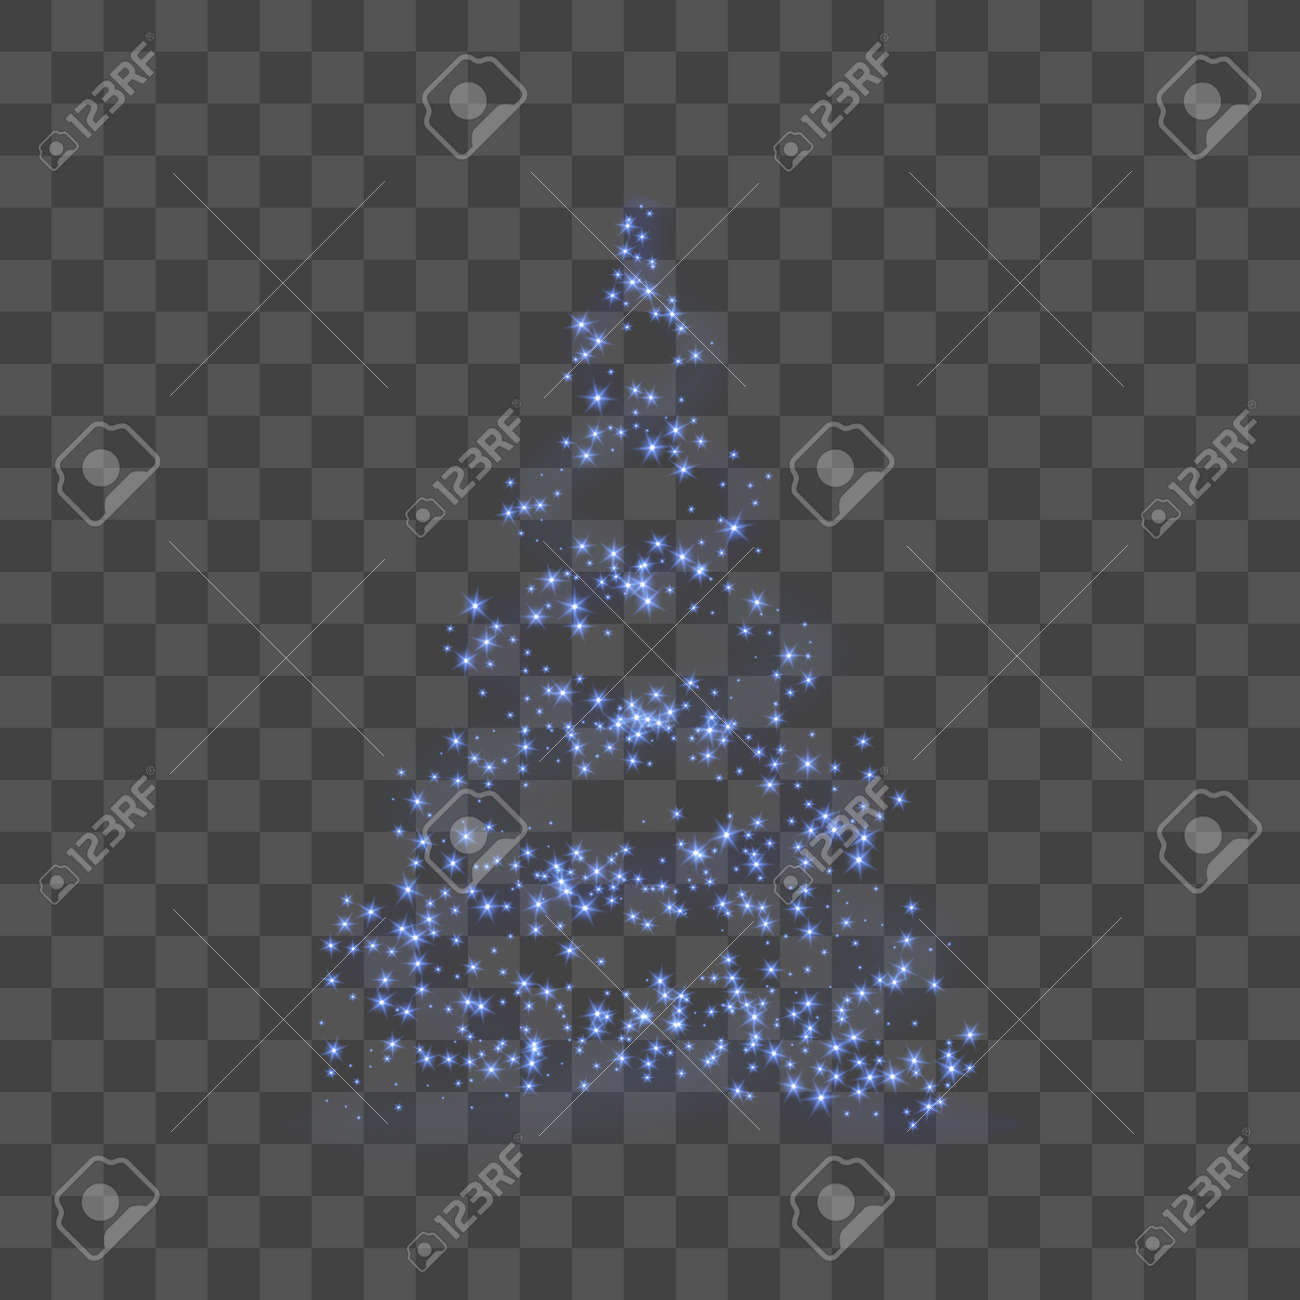 Christmas Tree Transparent Background.Christmas Tree Transparent Background Blue Christmas Tree As